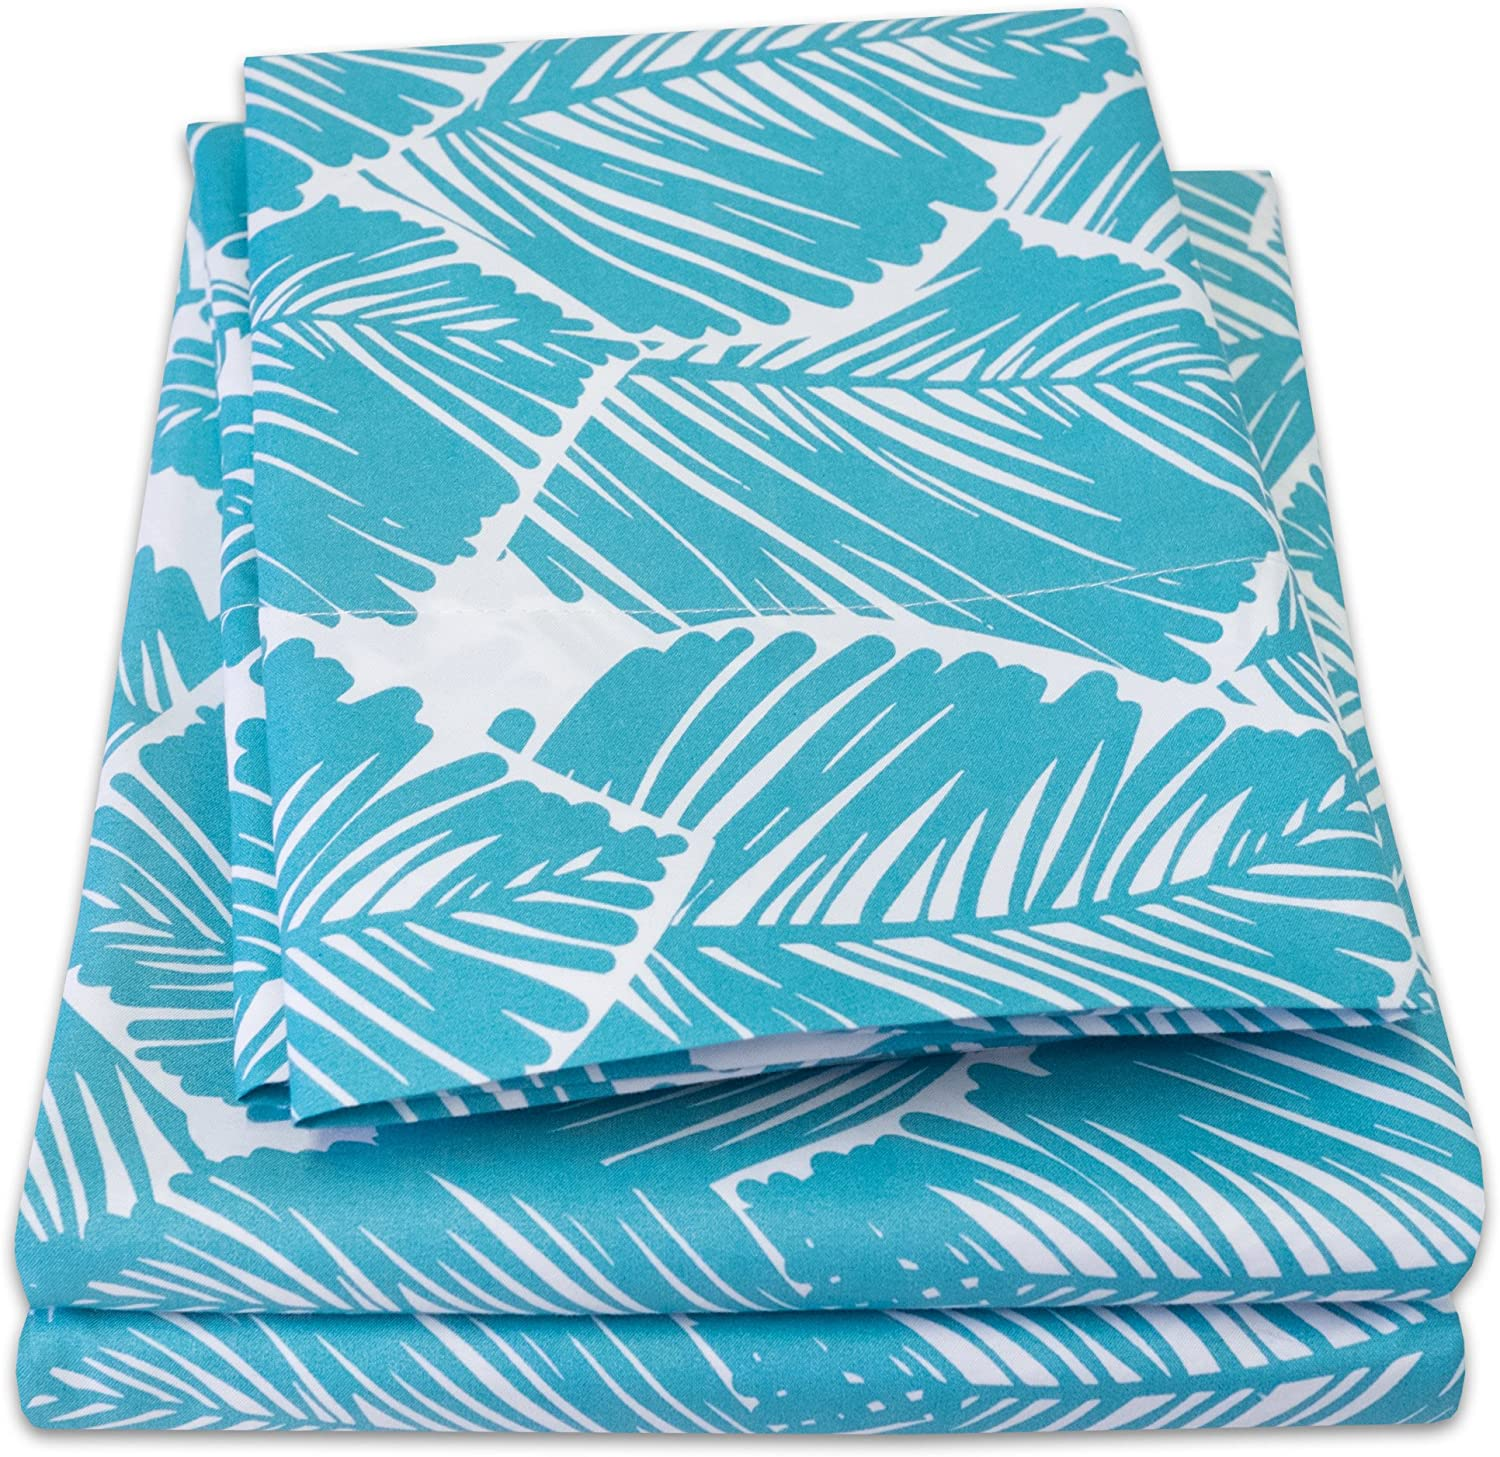 1500 Supreme Collection Extra Soft Tropical Leaf Teal Pattern Sheet Set, King - Luxury Bed Sheets Set with Deep Pocket Wrinkle Free Hypoallergenic Bedding, Trending Printed Pattern, King Size